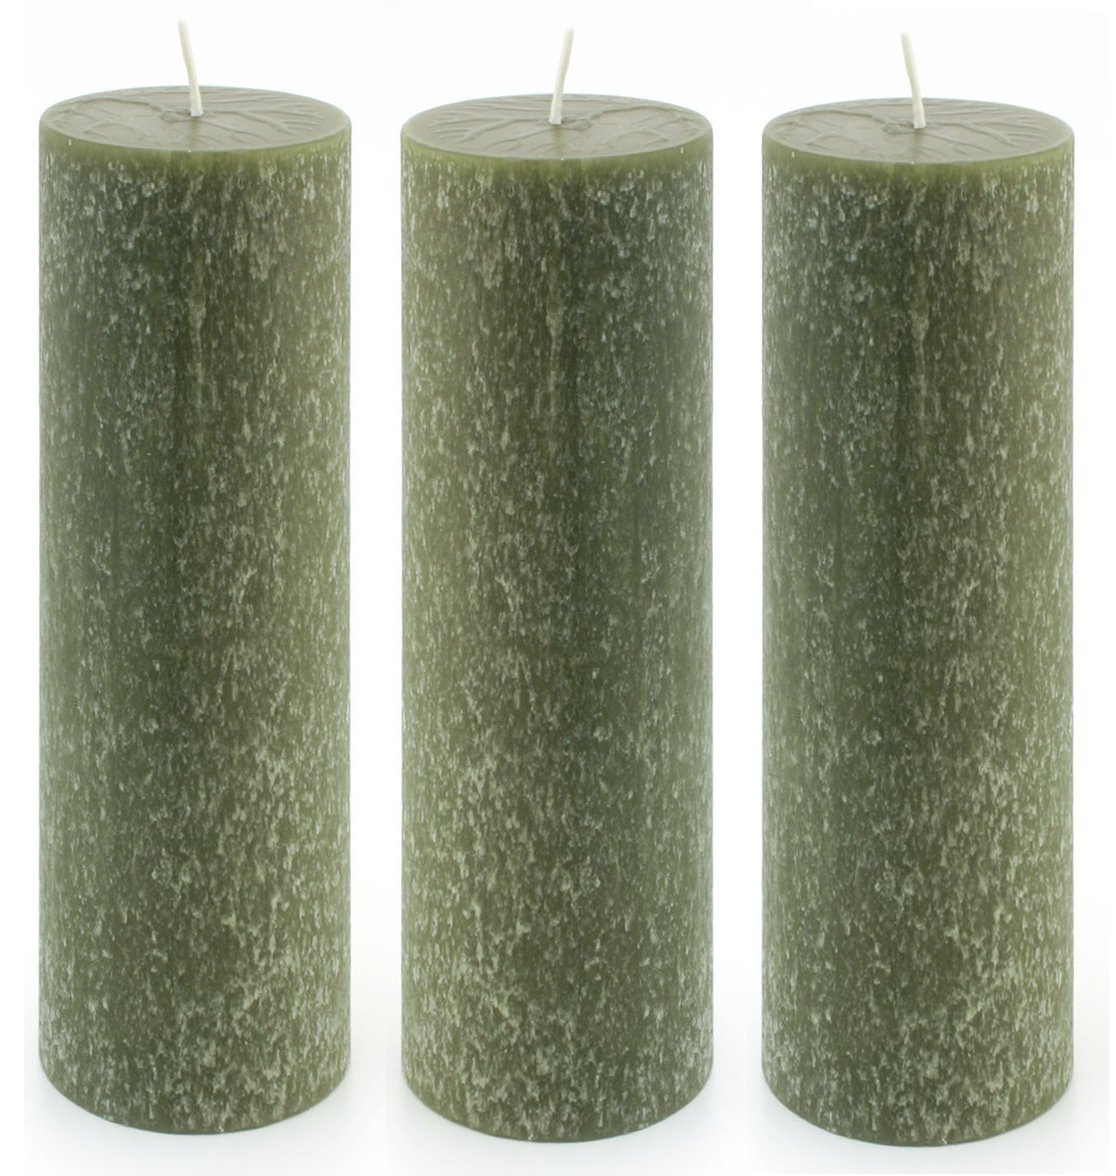 Root Unscented Timberline Pillar Candles, 2-Inch by 6-Inch Tall, Box of 3, Aqua 326155